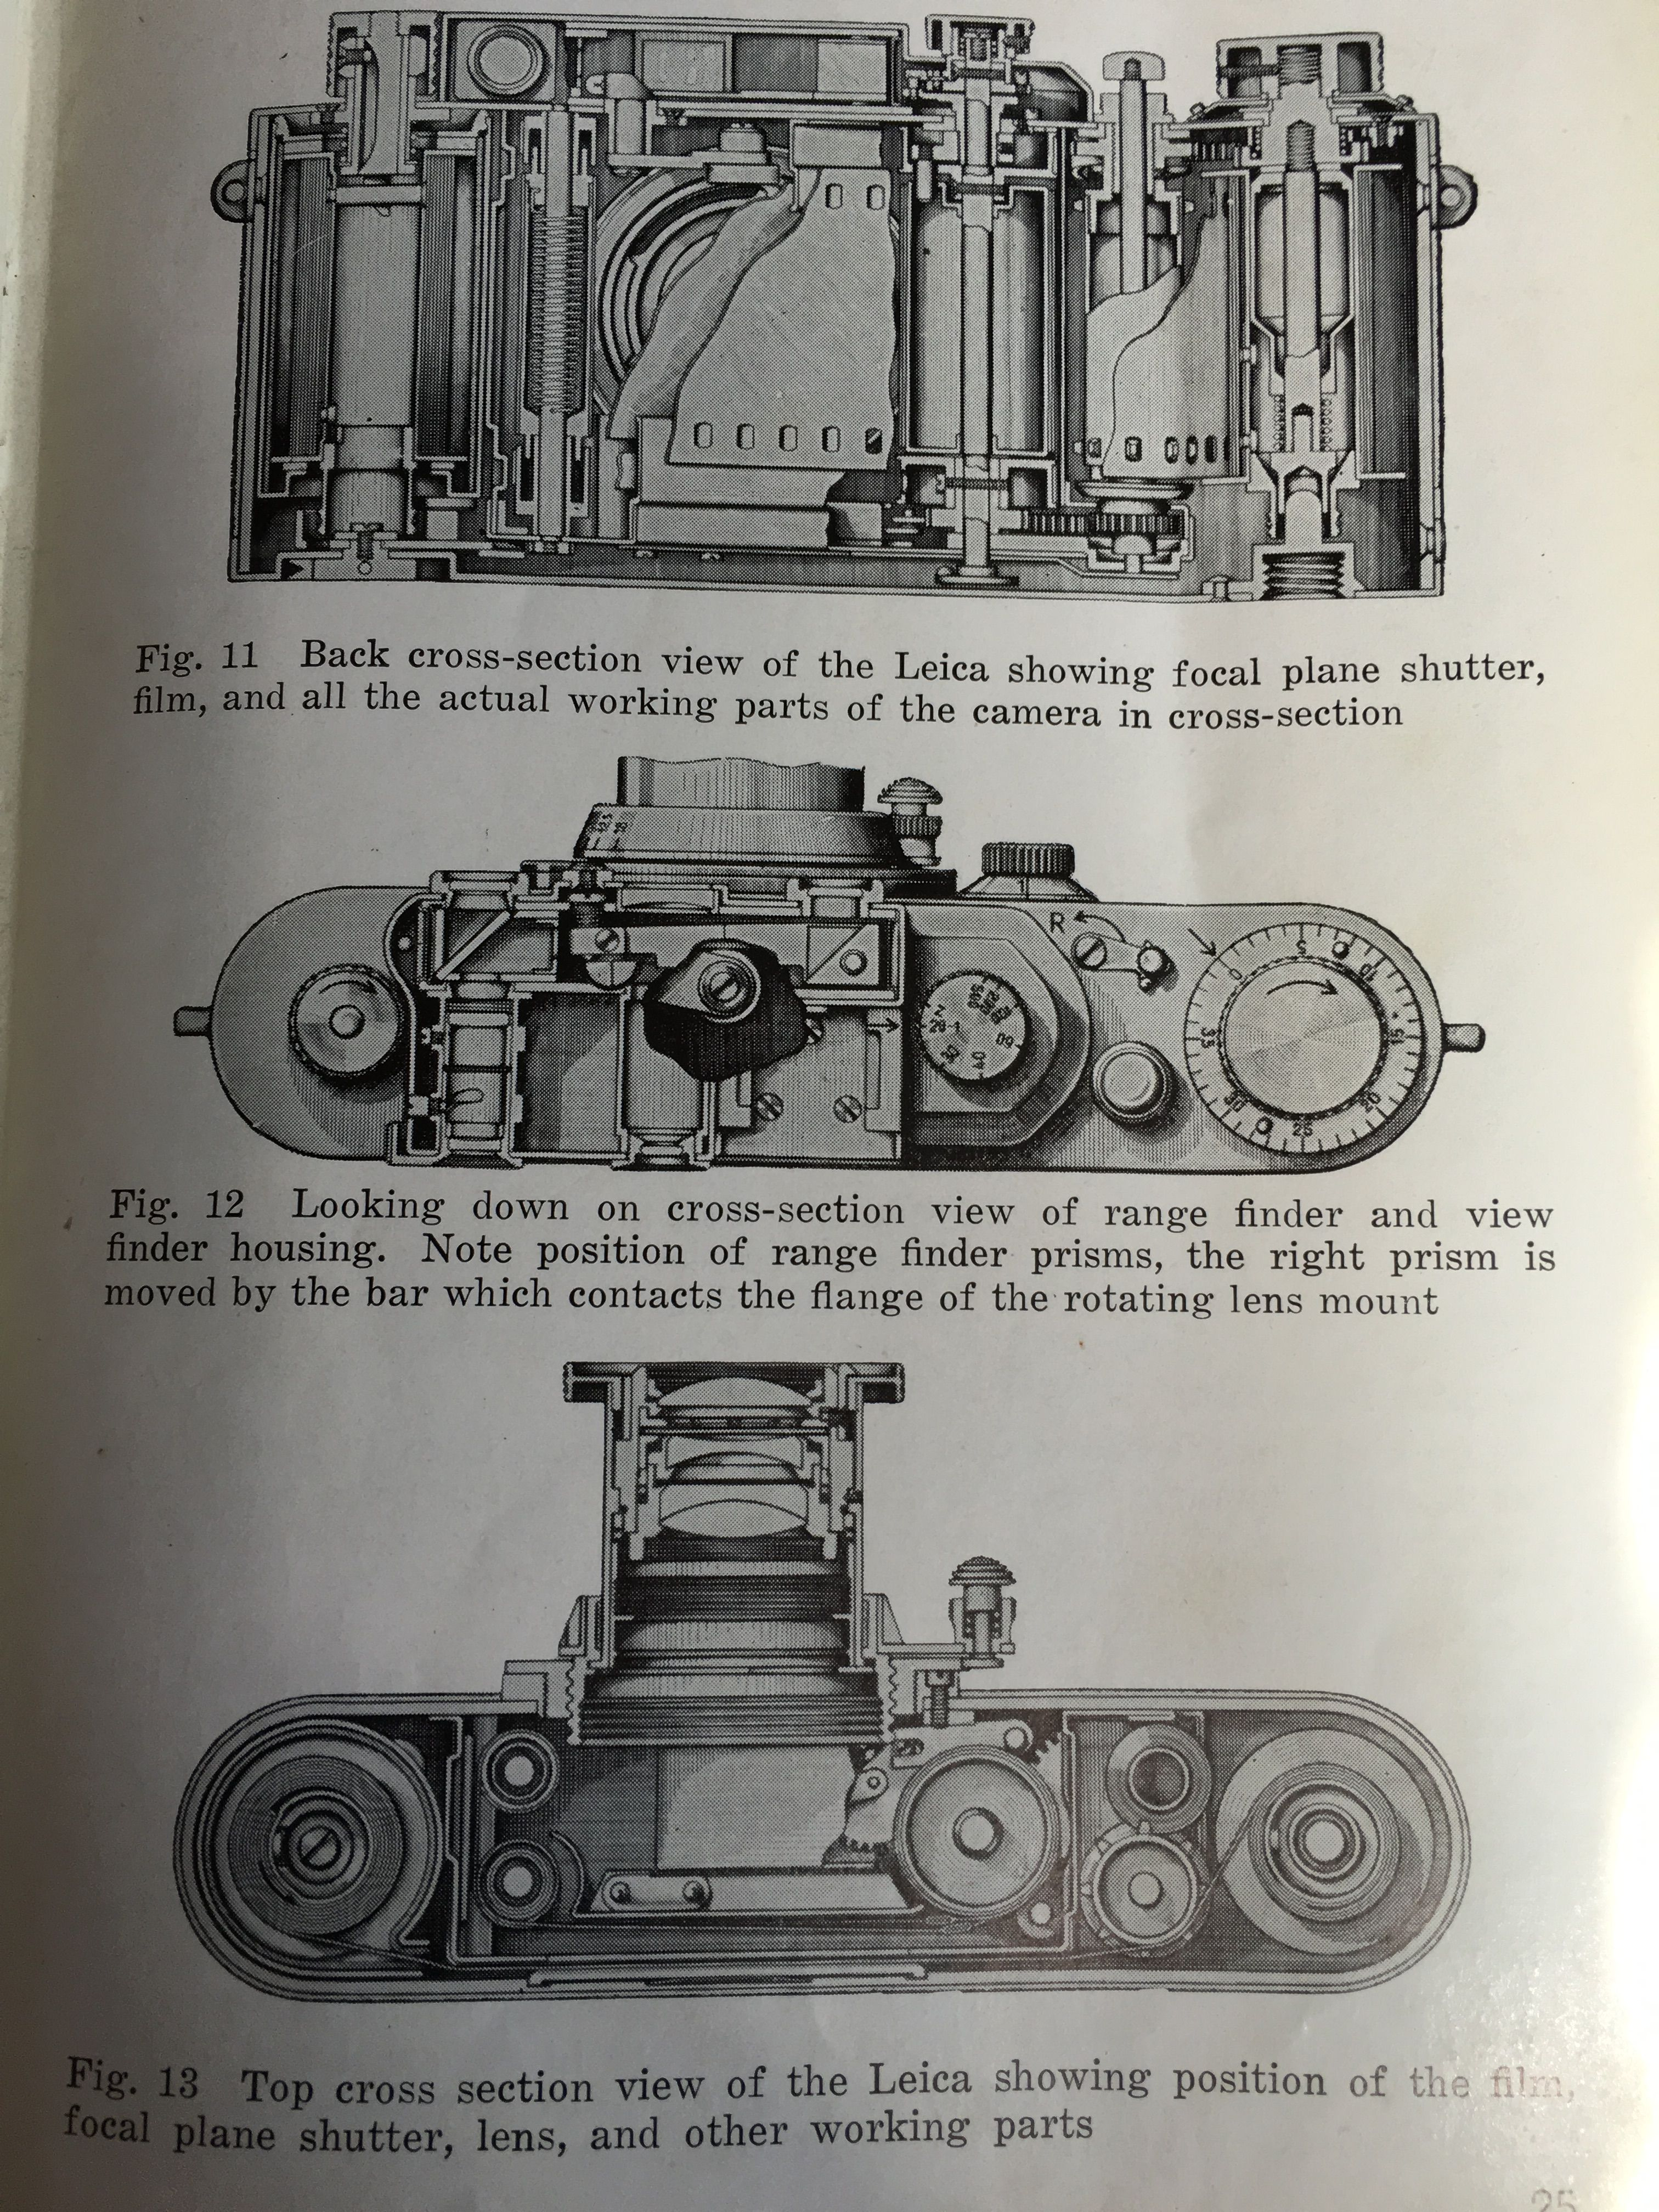 From the 1938 Leica Manual. A Leica IIIf cross-section